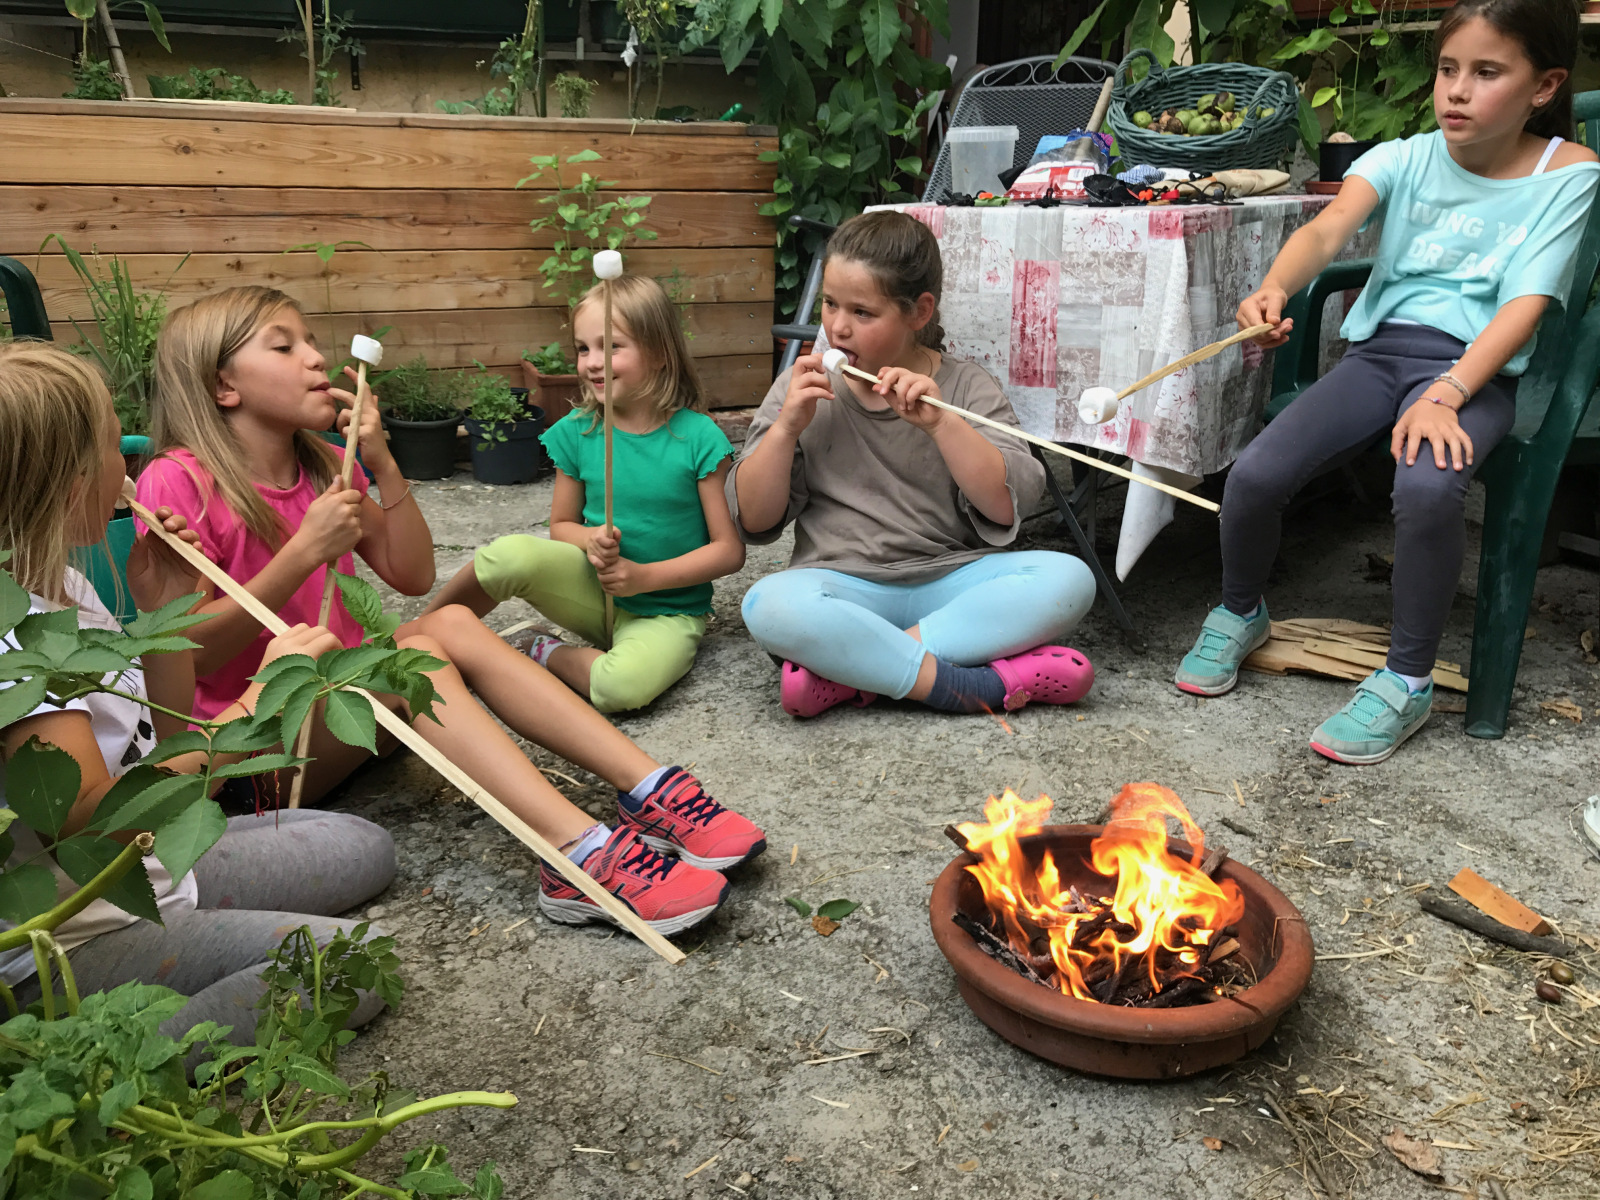 marshmellows grillen